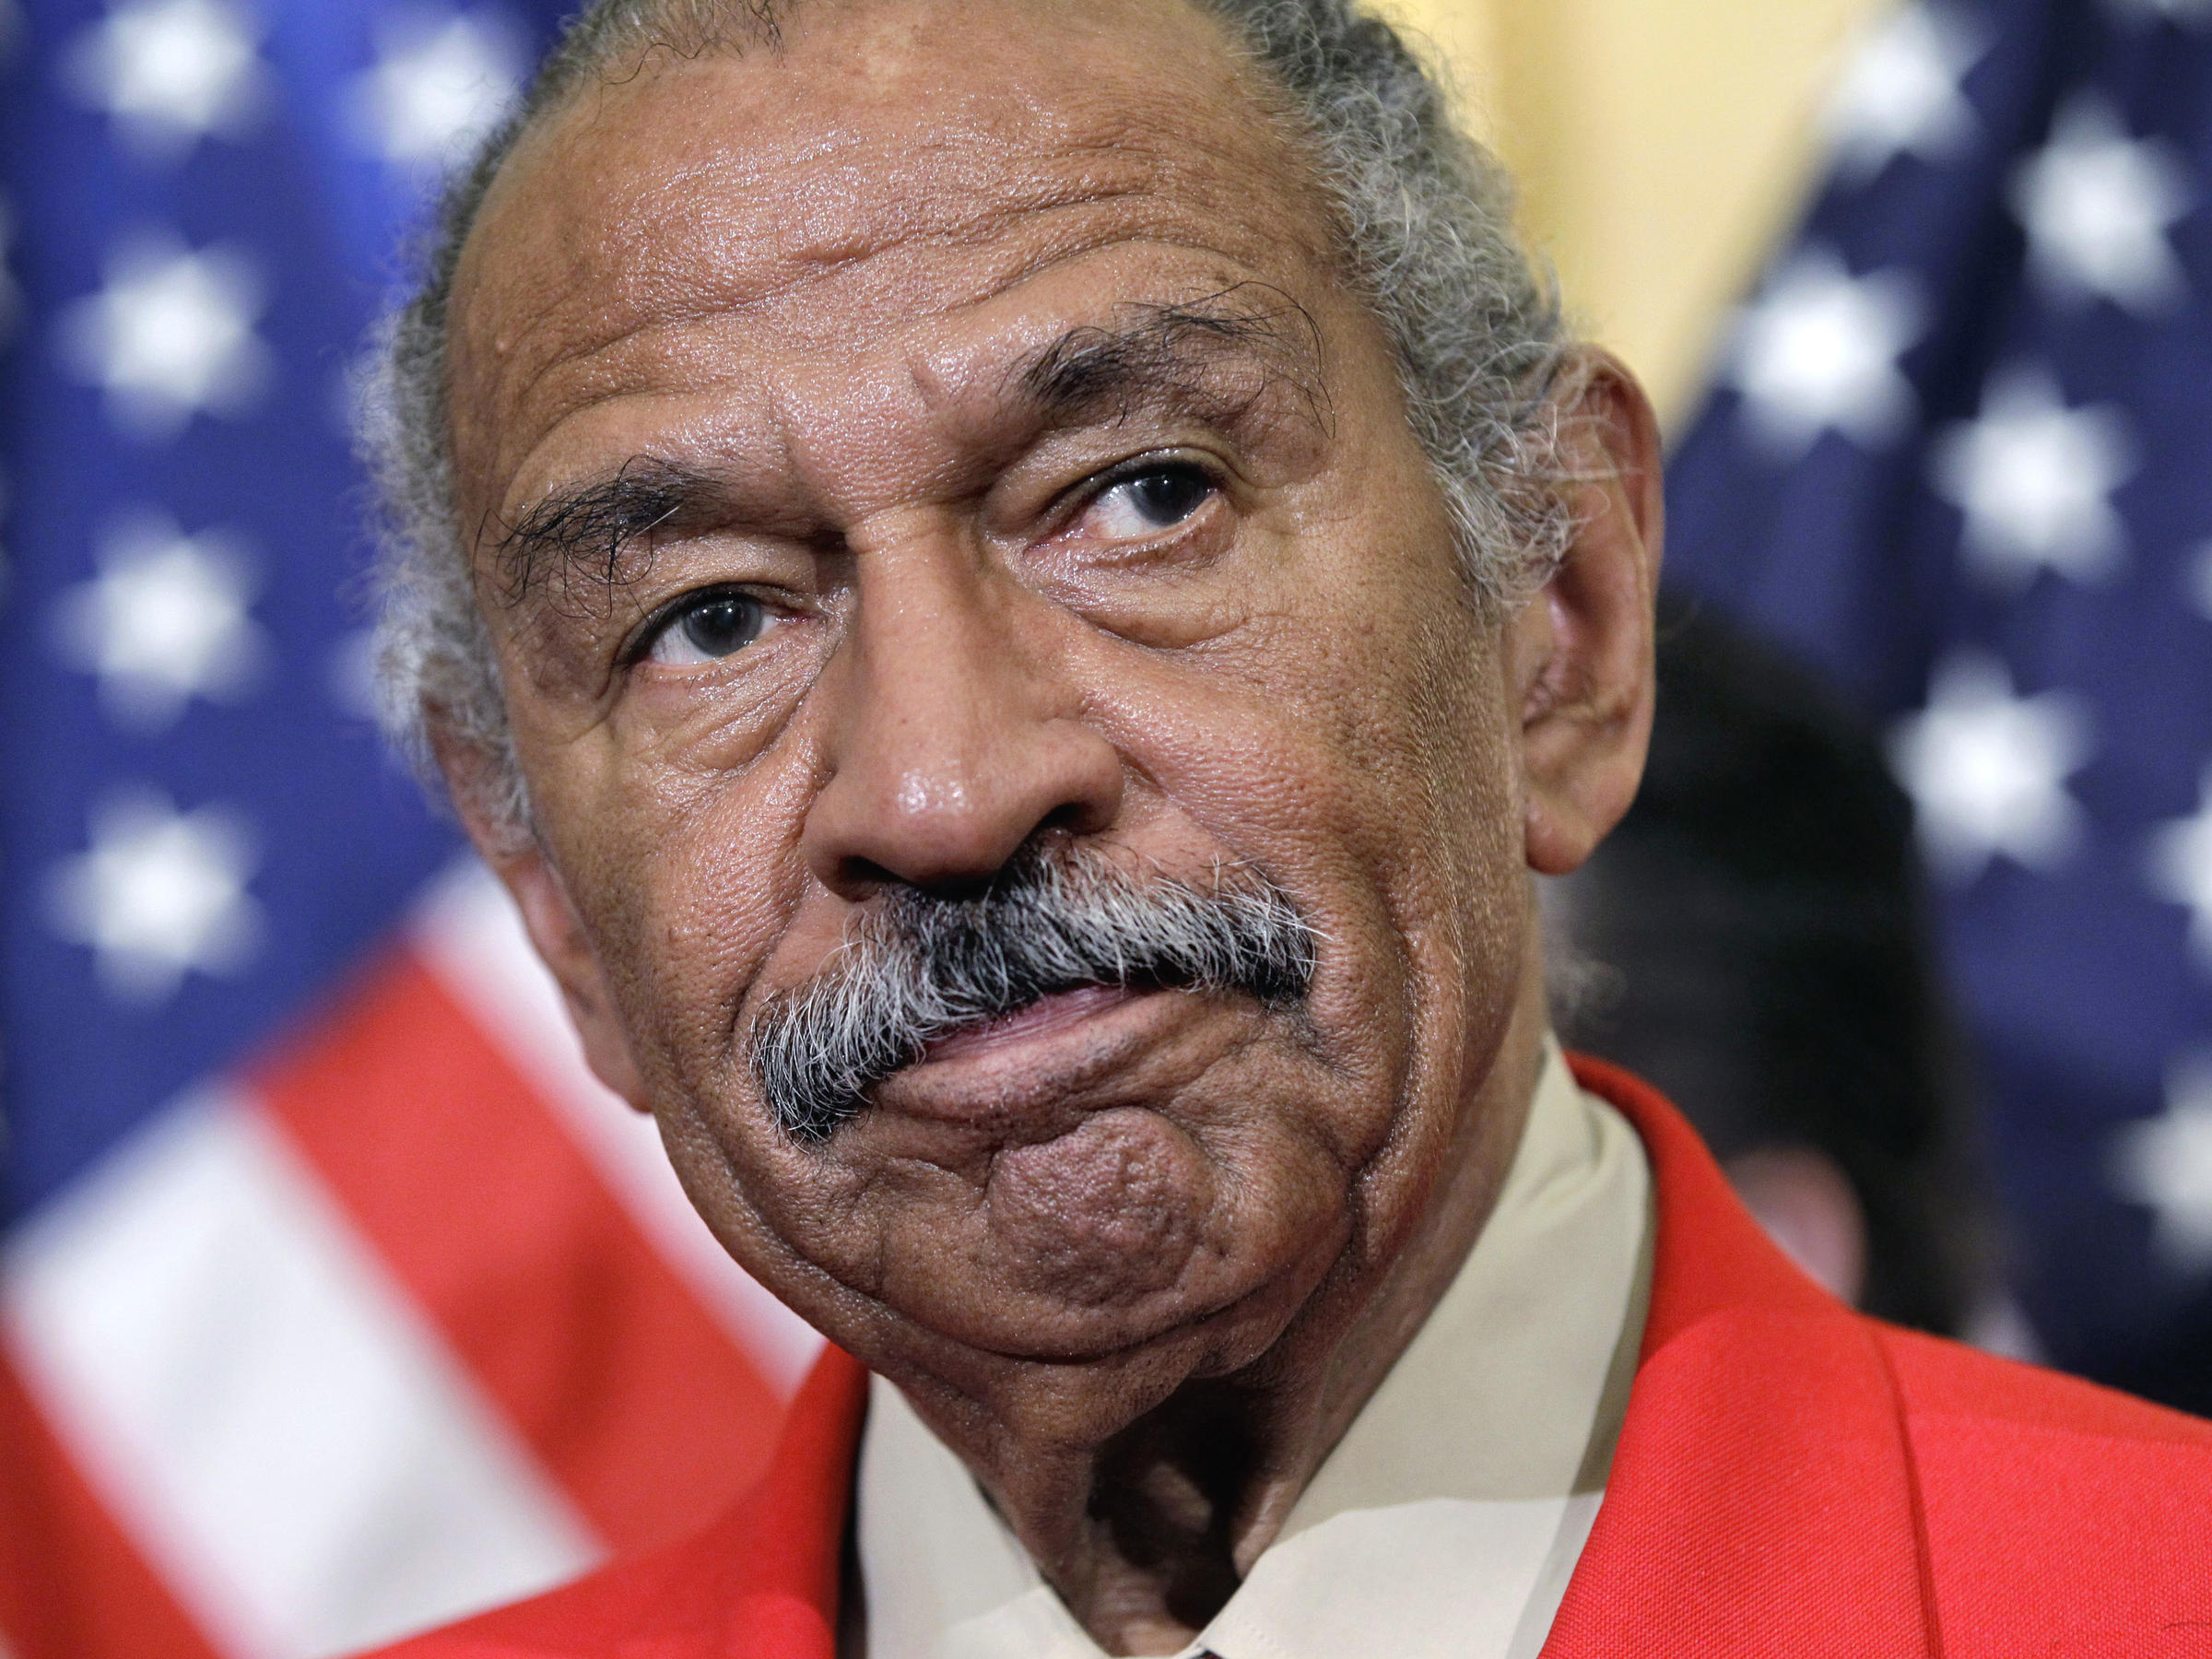 Rep. John Conyers D-Mich. seen in 2011 has resigned over allegations of sexual harassment